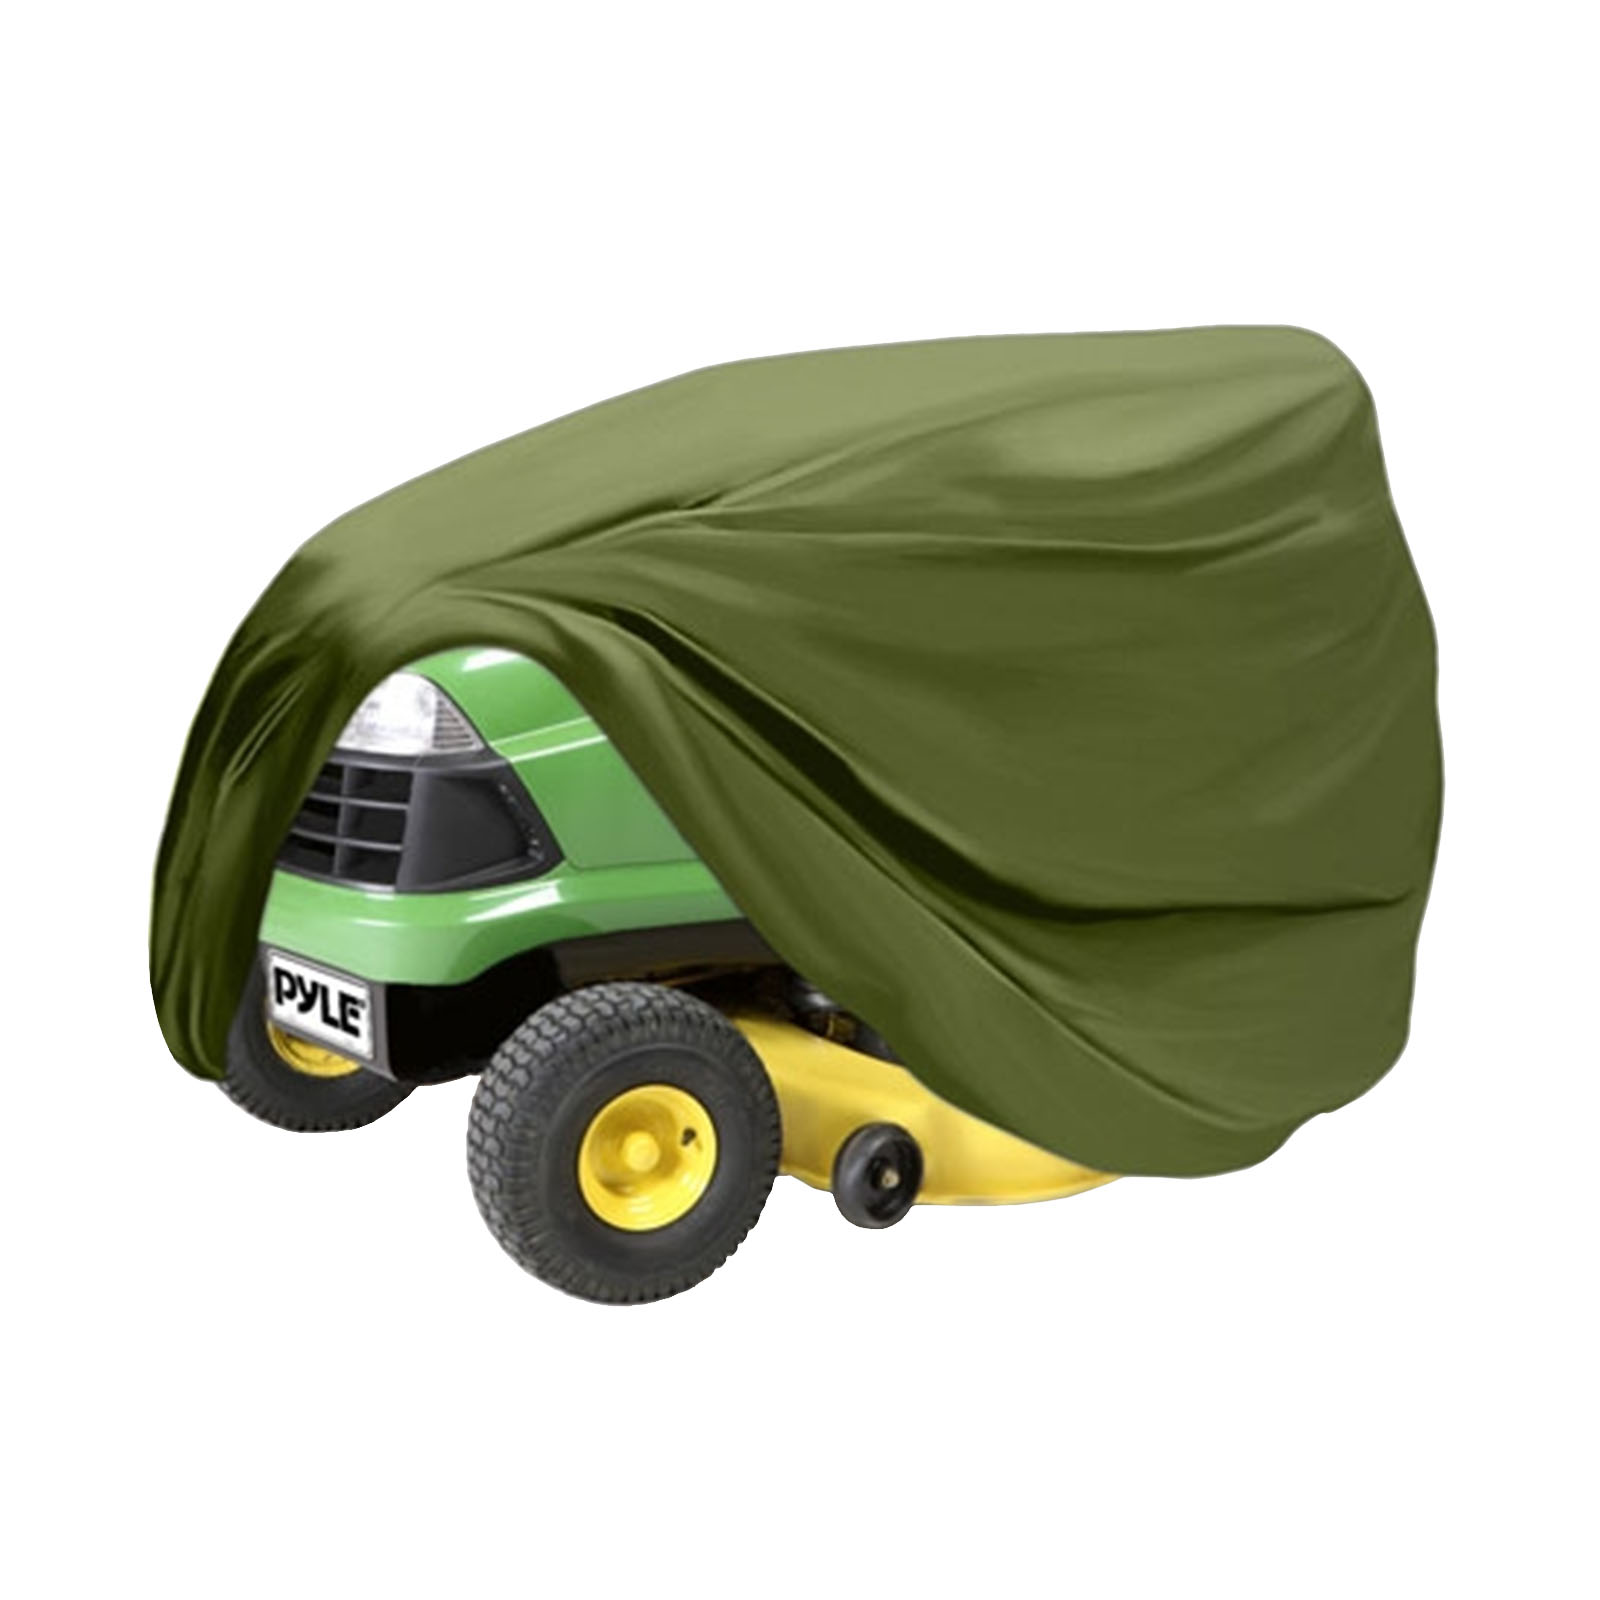 Armor Shield Lawn Tractor Mower Protective Storage Cover, Indoor/Outdoor, Universal Size